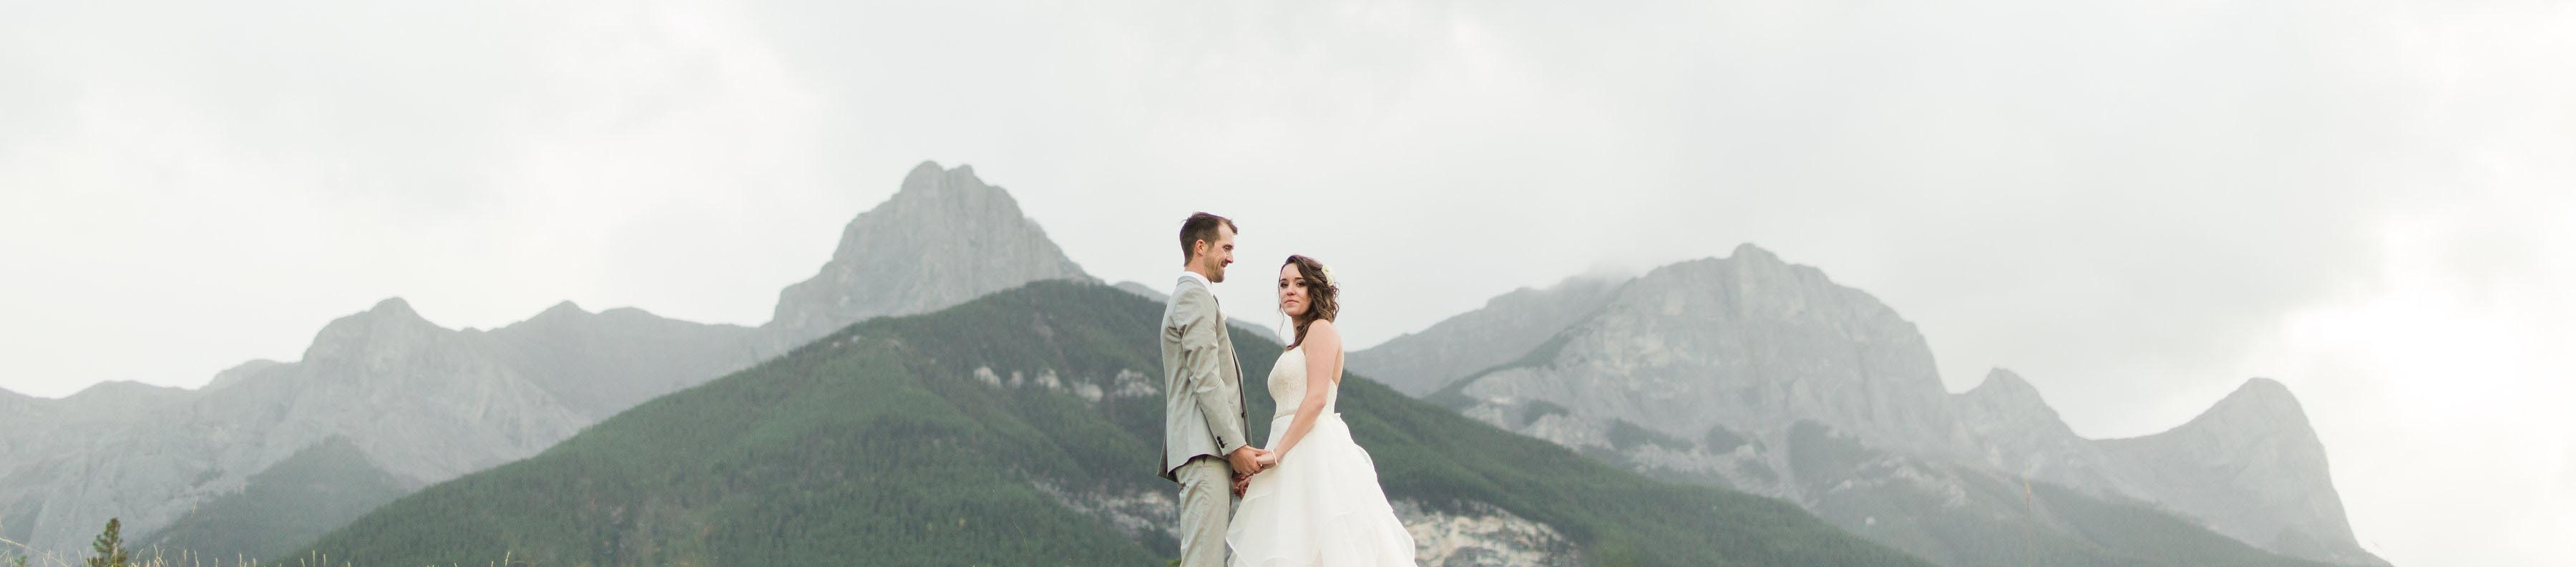 Tied With A Bow Weddings | Tied With A Bow | Colorado Wedding Planner | Colorado Wedding Planning | Rocky Mountain Wedding Planner | Rocky Mountain Wedding Planning